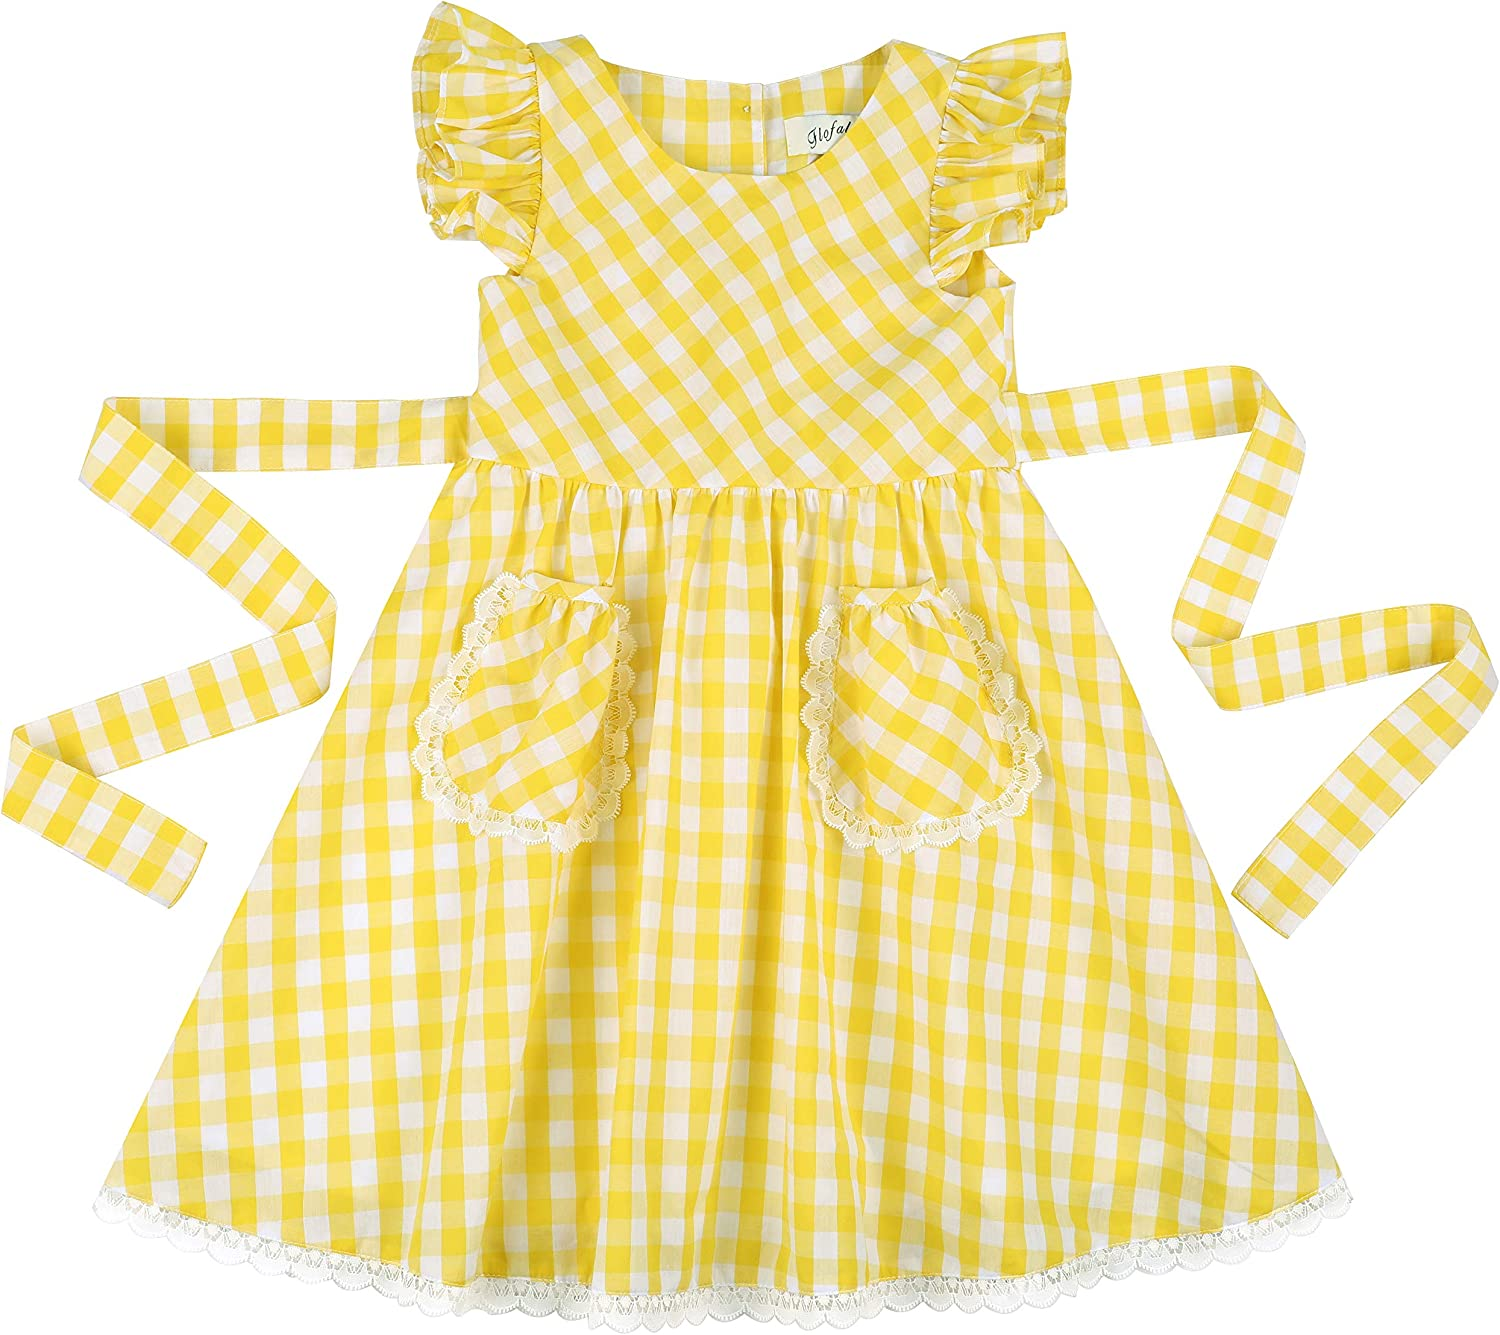 Kids 1950s Clothing & Costumes: Girls, Boys, Toddlers Flofallzique Girls Gingham Dress Summer Plaid Casual Toddler Sundress with Pockets $24.99 AT vintagedancer.com